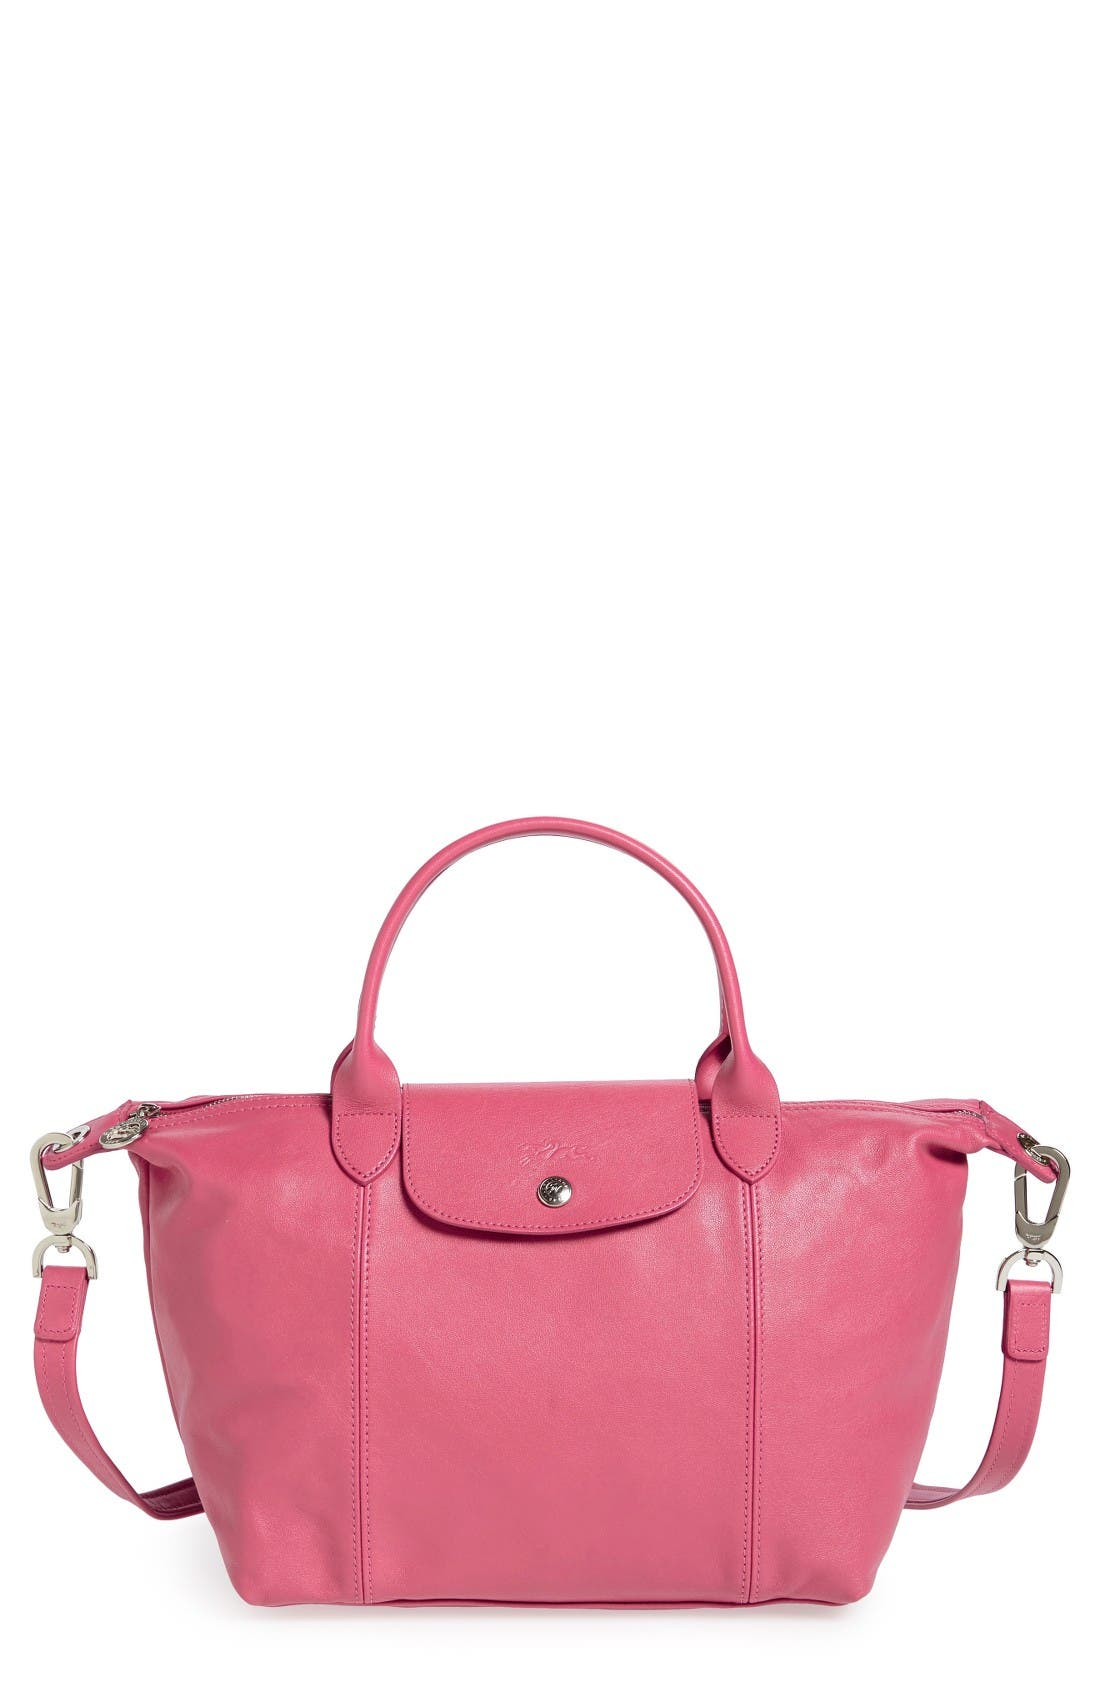 Small 'Le Pliage Cuir' Leather Top Handle Tote,                             Main thumbnail 24, color,